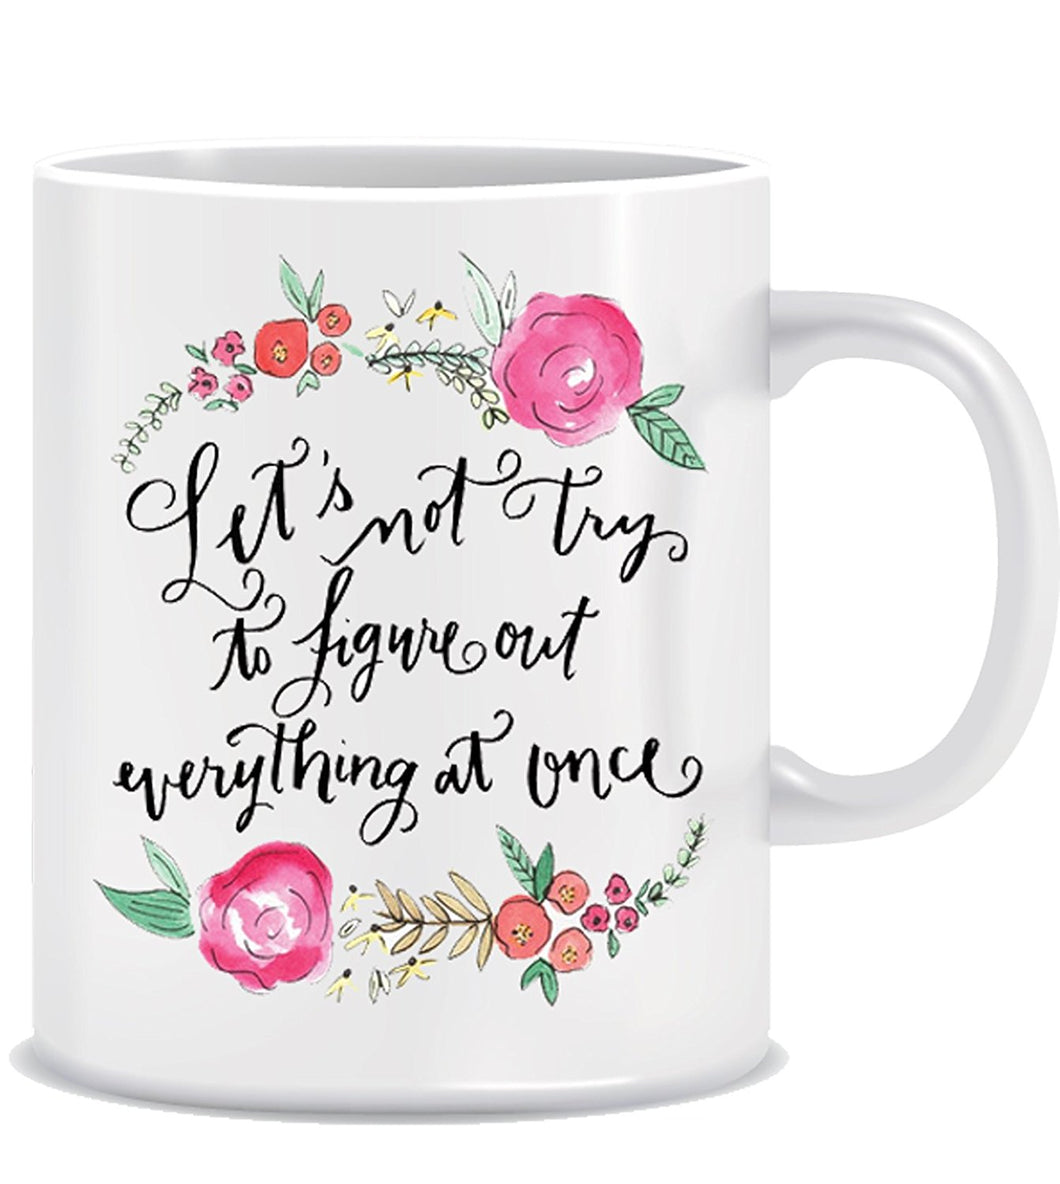 Let's Not Try To Figure Out Everything At once Coffee Mug ED012